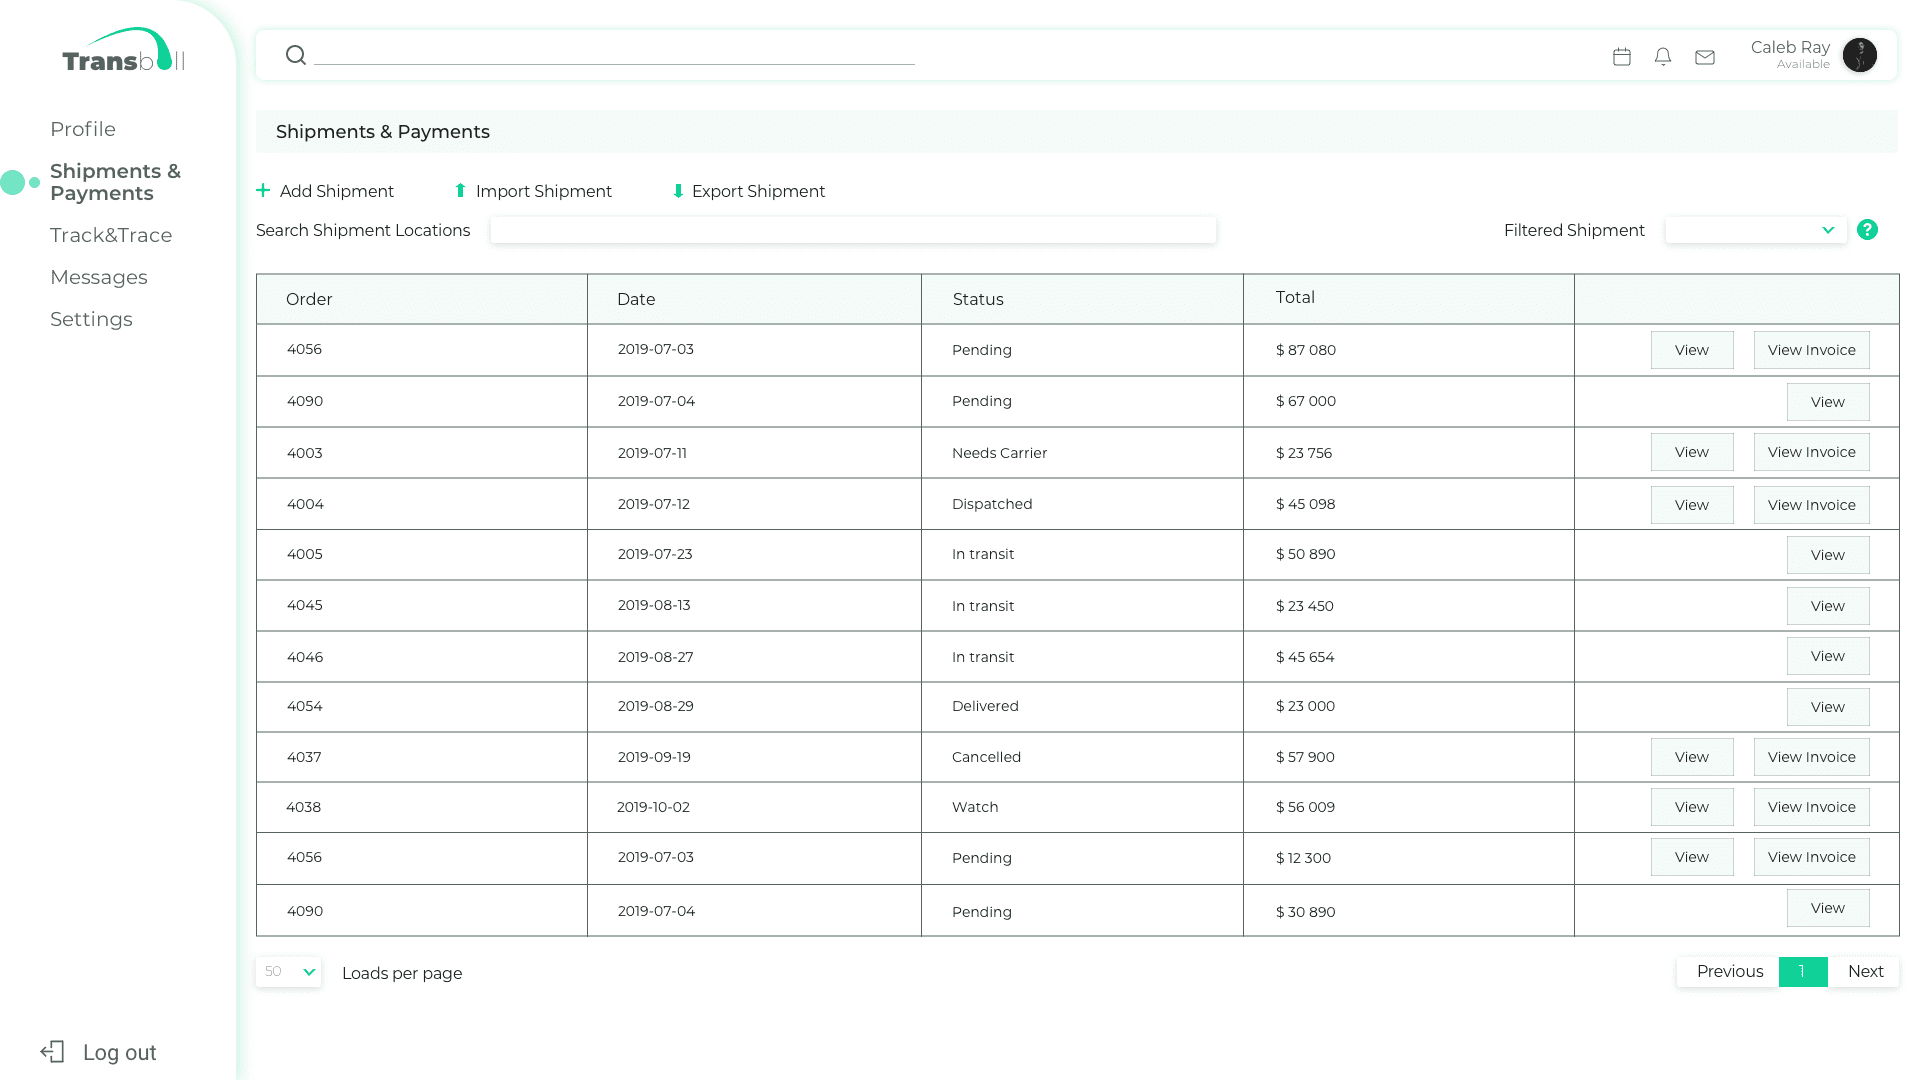 Shipments and Payments page